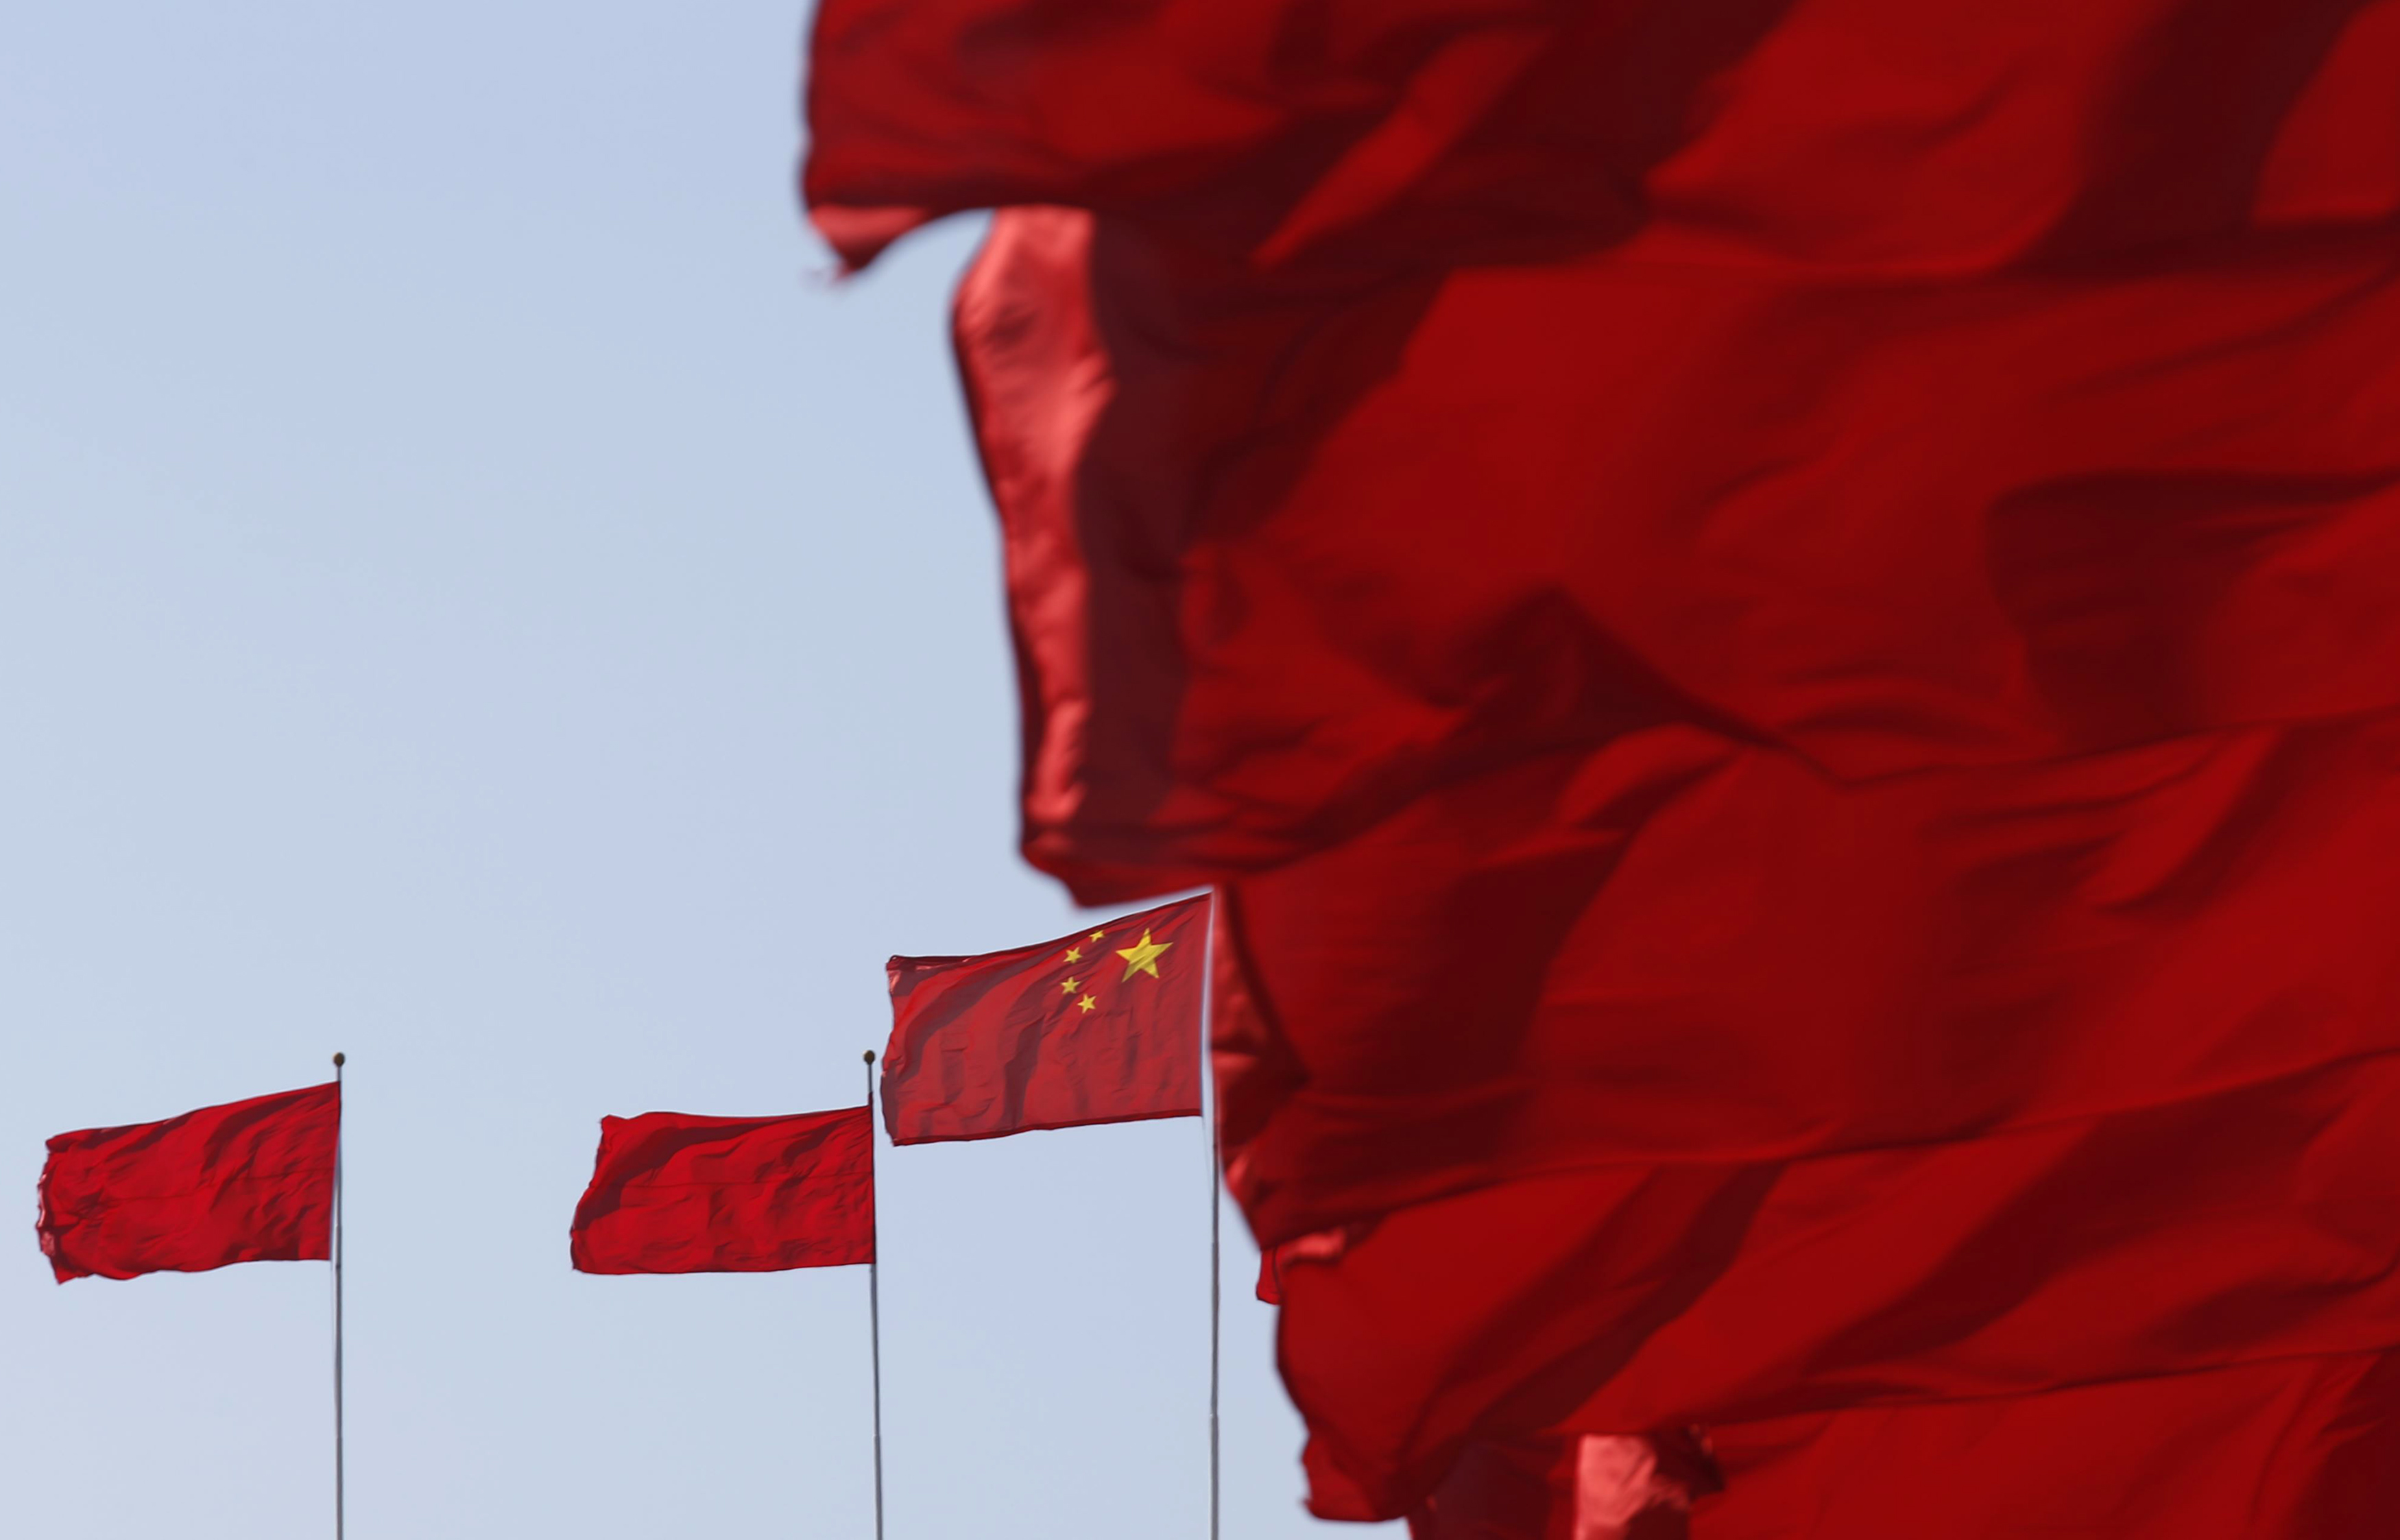 beijing supported hackers spy on regional governments in south